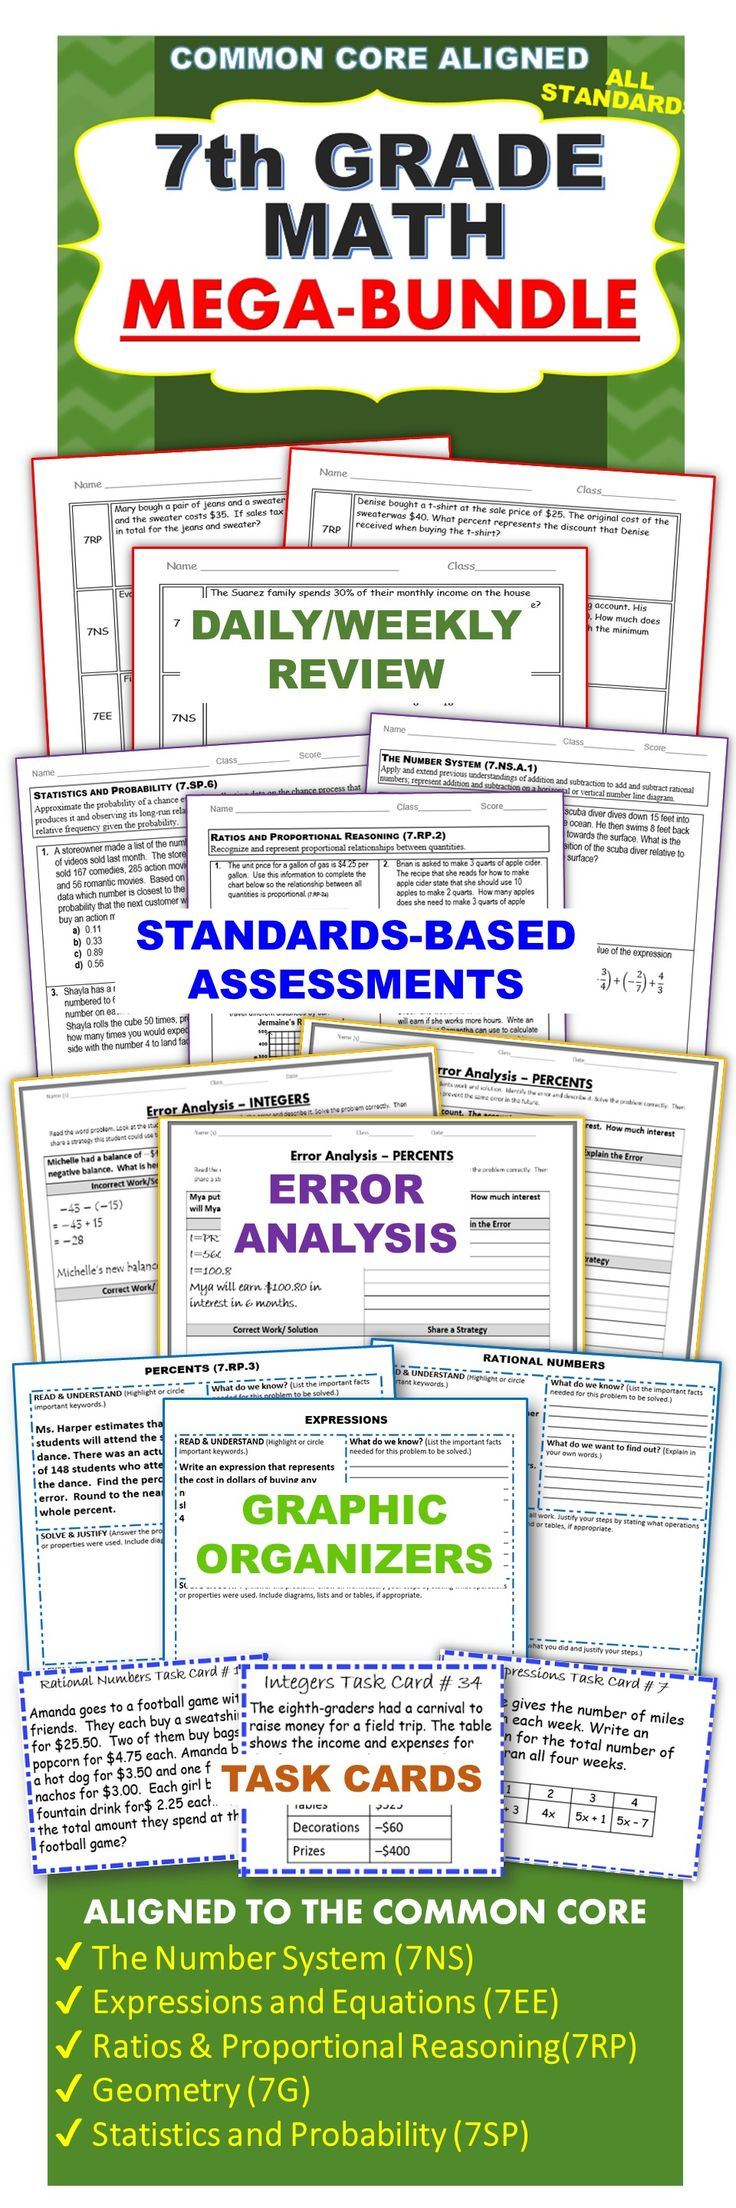 This 7th GRADE COMMON CORE MEGA-BUNDLE includes 25 of my top selling resources (over 265 pages of warm-ups, assessments, task cards, error analysis worksheets, problem solving worksheets and practice worksheets).As a current 7th grade math teacher, I am using the activities in this bundle for WARM UPS, HOMEWORK, math CENTERS, ASSESSMENTS, EXIT TICKETS and TEST PREP .: This 7th GRADE COMMON CORE MEGA-BUNDLE includes 25 of my top selling resources (over 265 pages of warm-ups, assessments, task cards, error analysis worksheets, problem solving worksheets and practice worksheets).As a current 7th grade math teacher, I am using the activities in this bundle for WARM UPS, HOMEWORK, math CENTERS, ASSESSMENTS, EXIT TICKETS and TEST PREP .